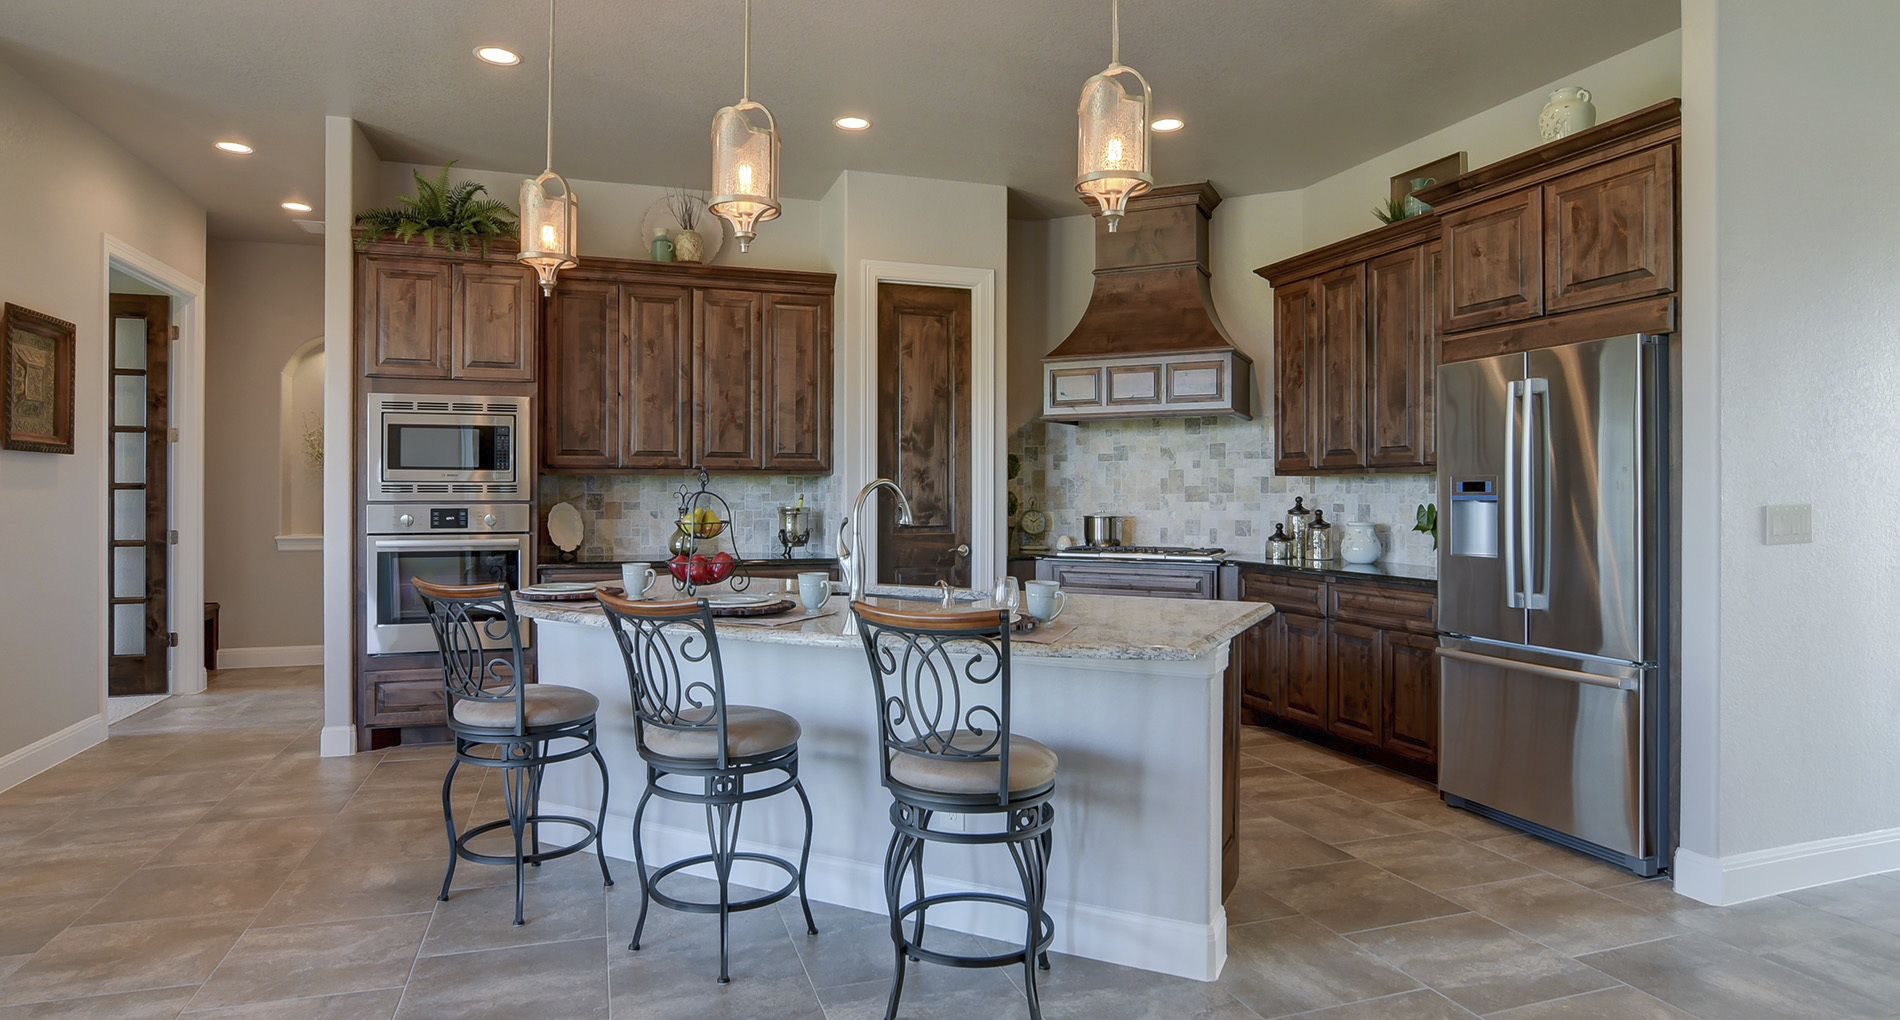 custom kitchen with wood cabinets iron finishing and patterned cream stone backsplash